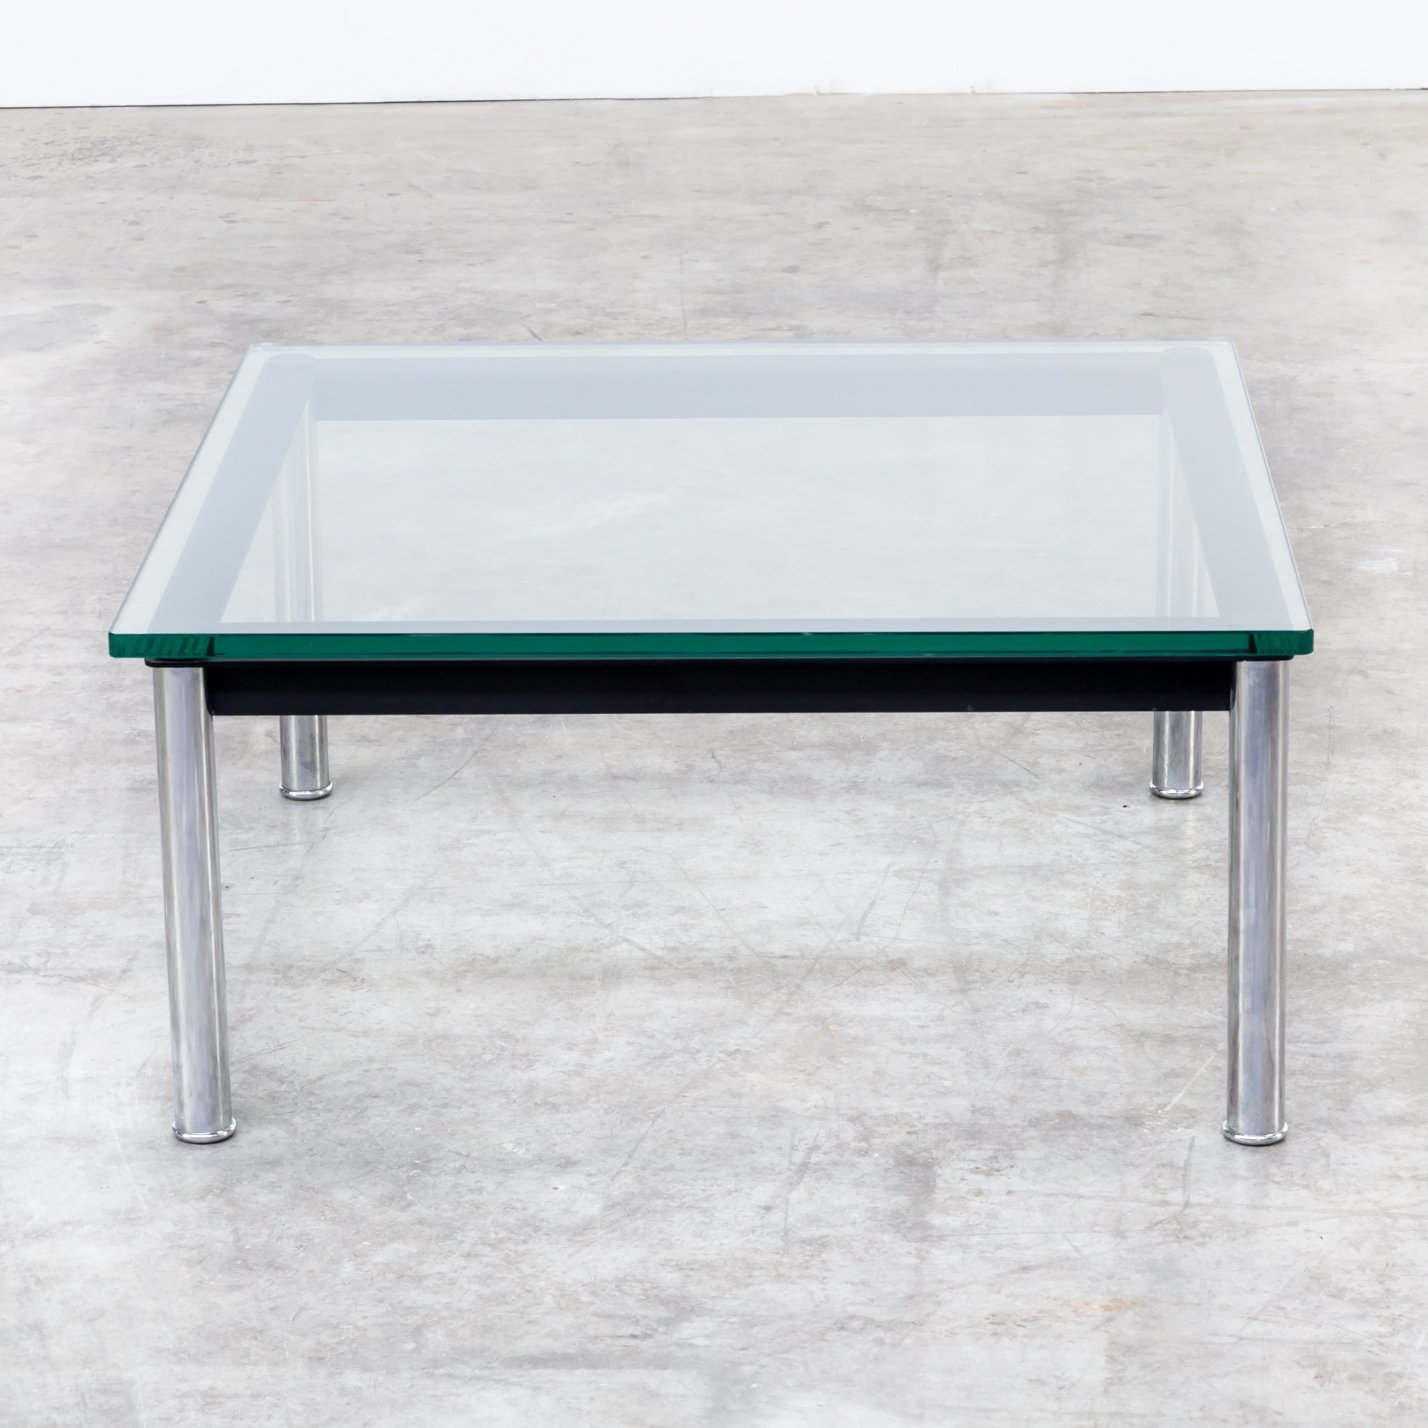 LC10P Coffee Table By Le Corbusier U0026 Charlotte Perriand For Cassina, 1980s